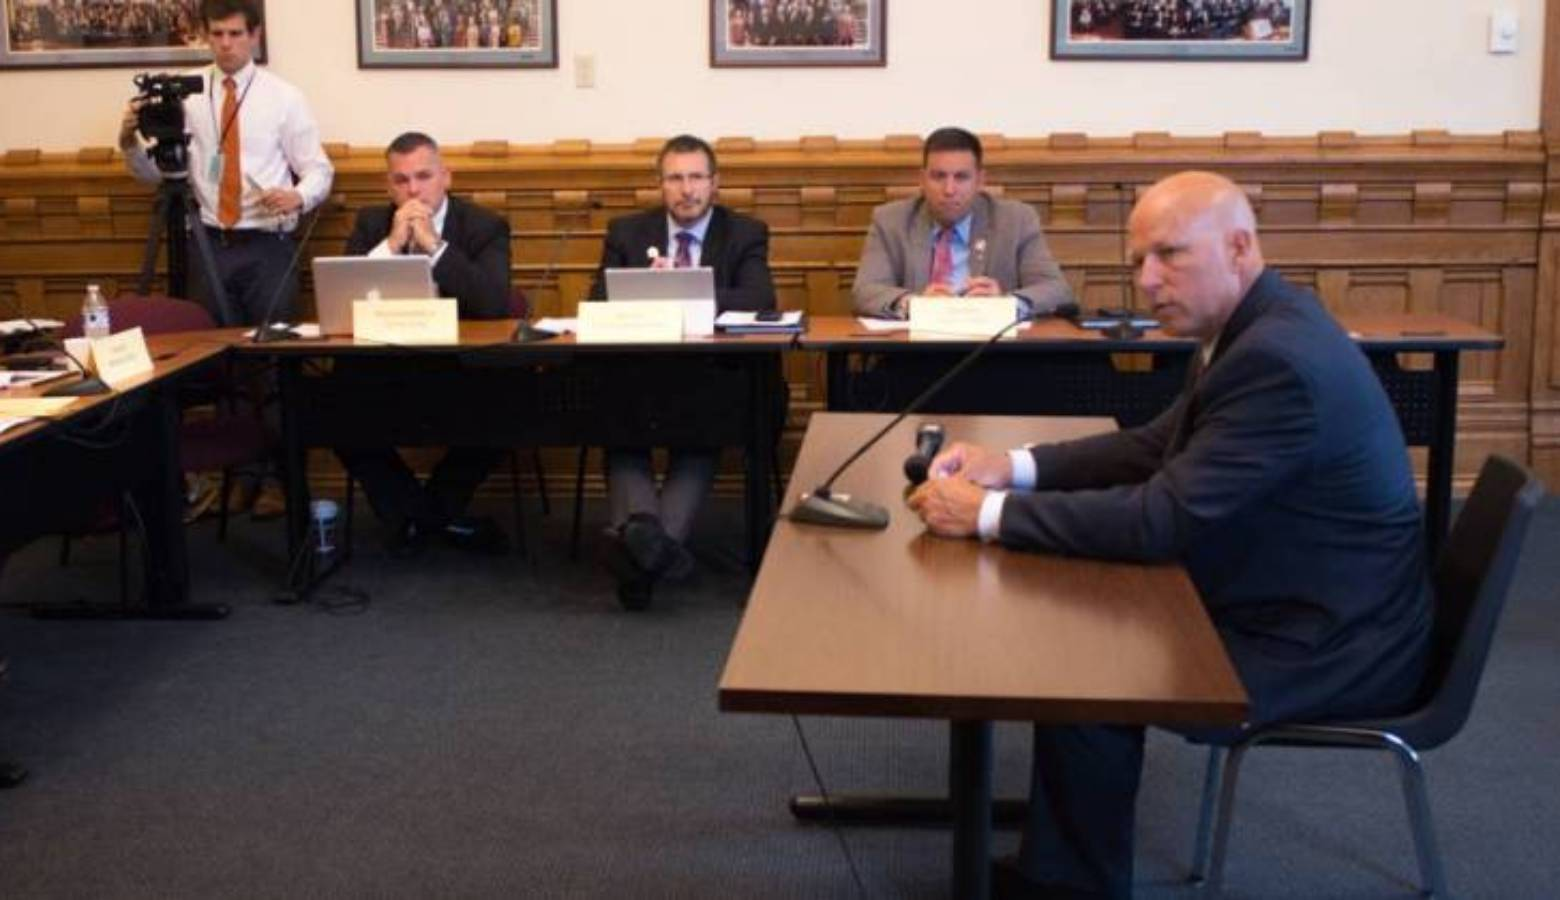 Republican State Senator Michael Crider is a former conservation officer and introduced the bill to a study committee.